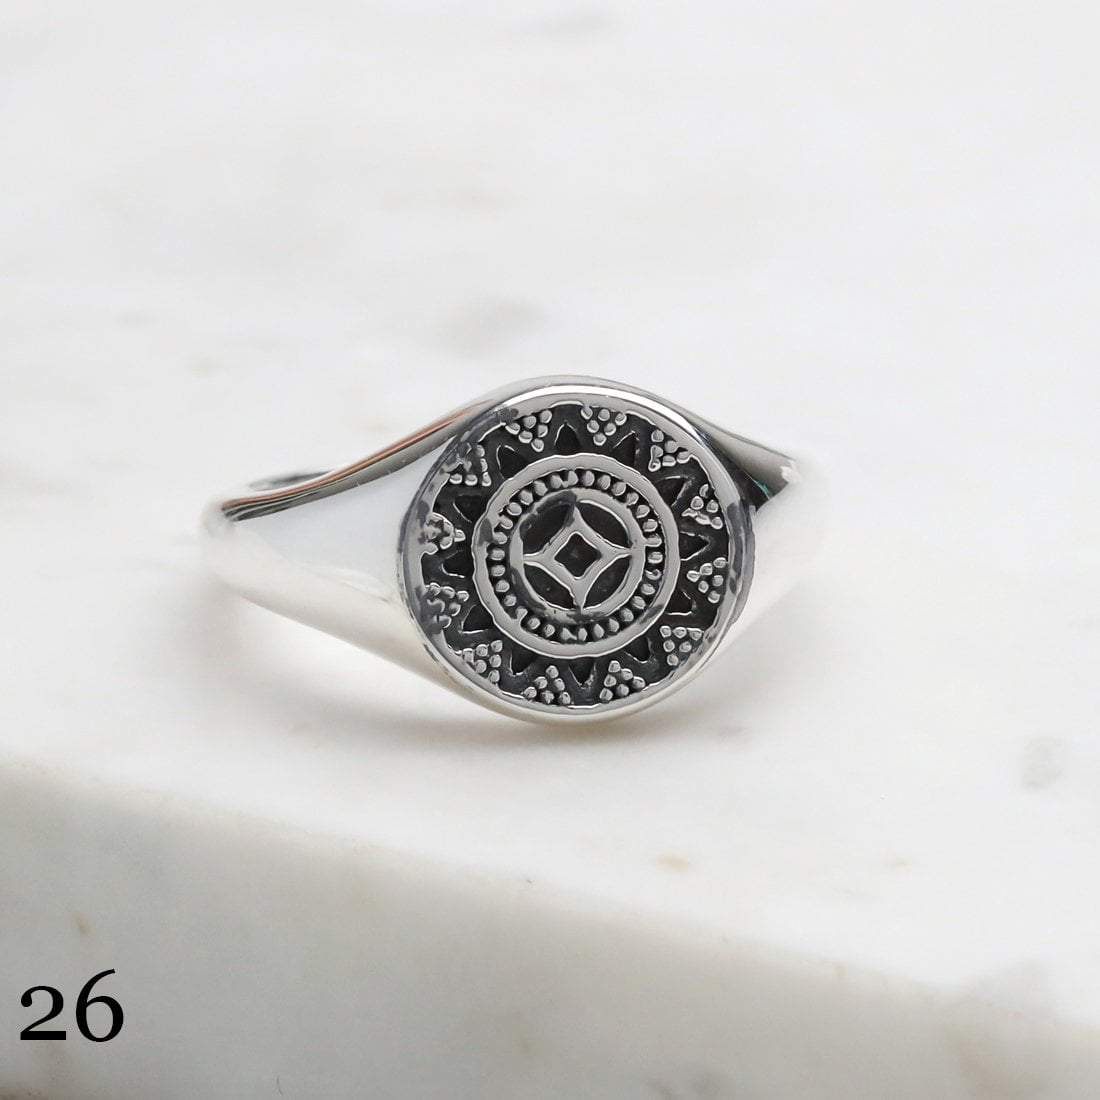 Midsummer Star Ring 26 -Size 6 12 Days of Festivities - Sample Sale 2